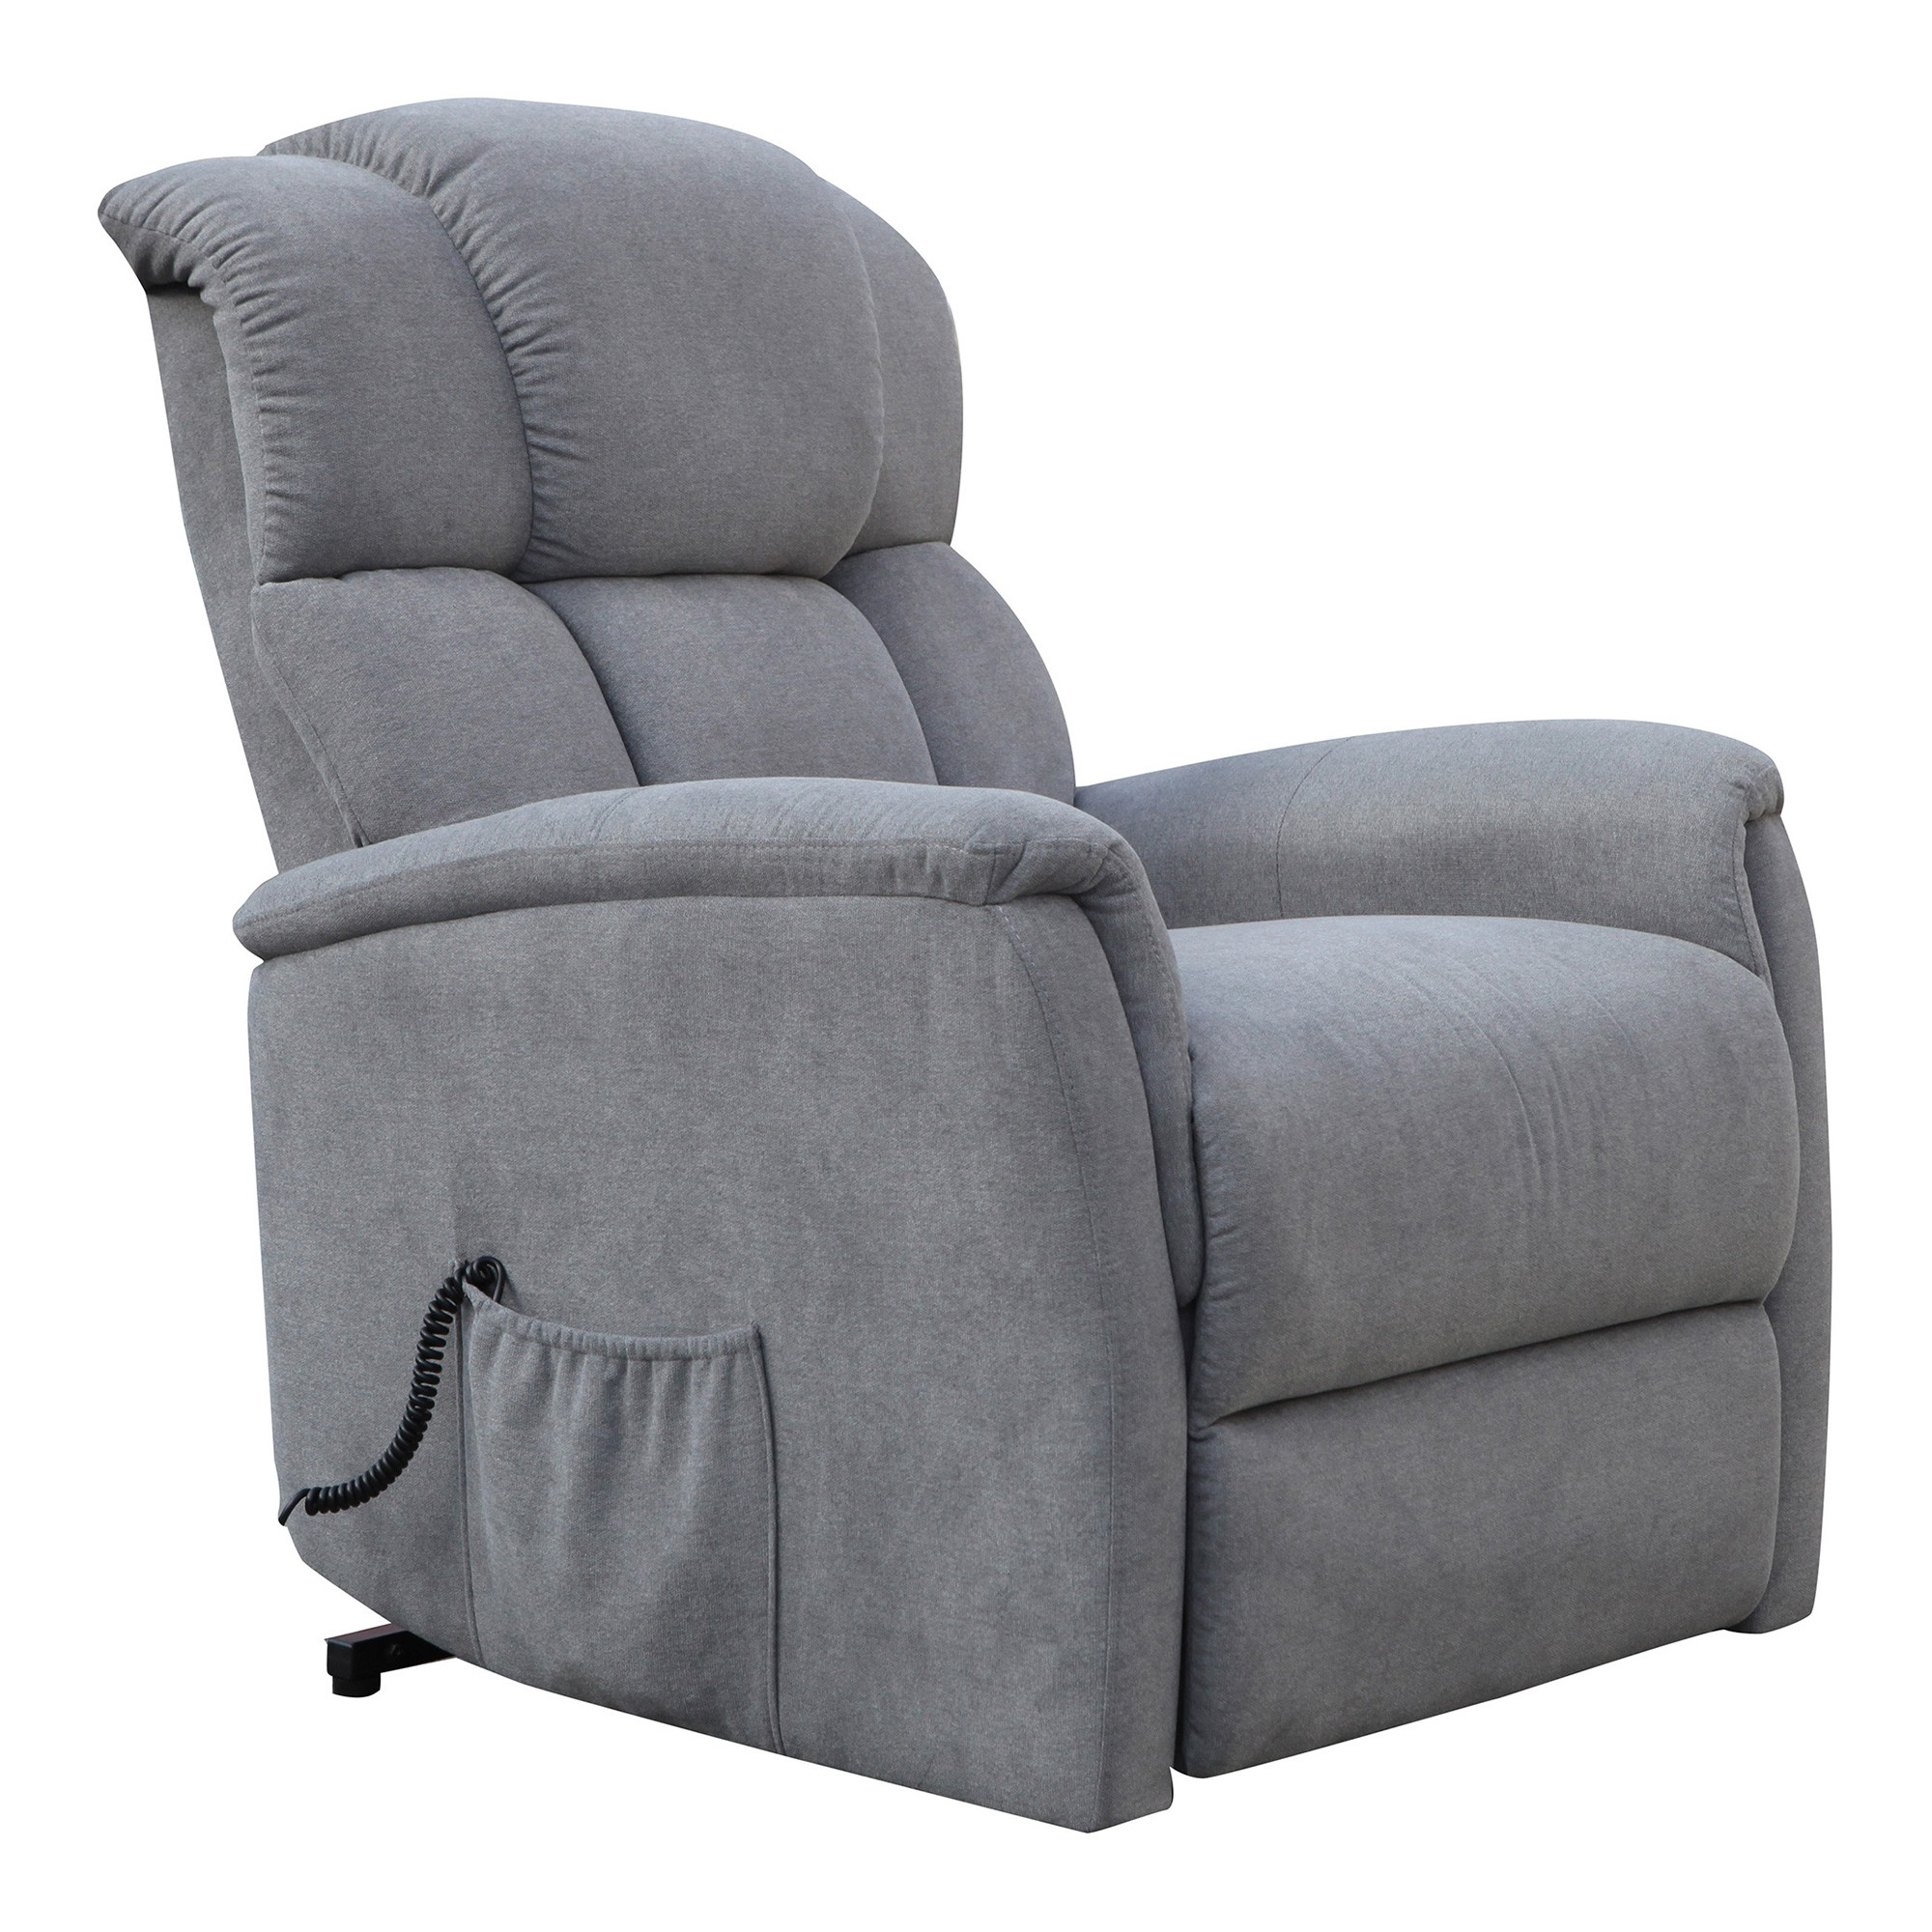 Boeing Linen Fabric Electric Lift Recliner, Storm